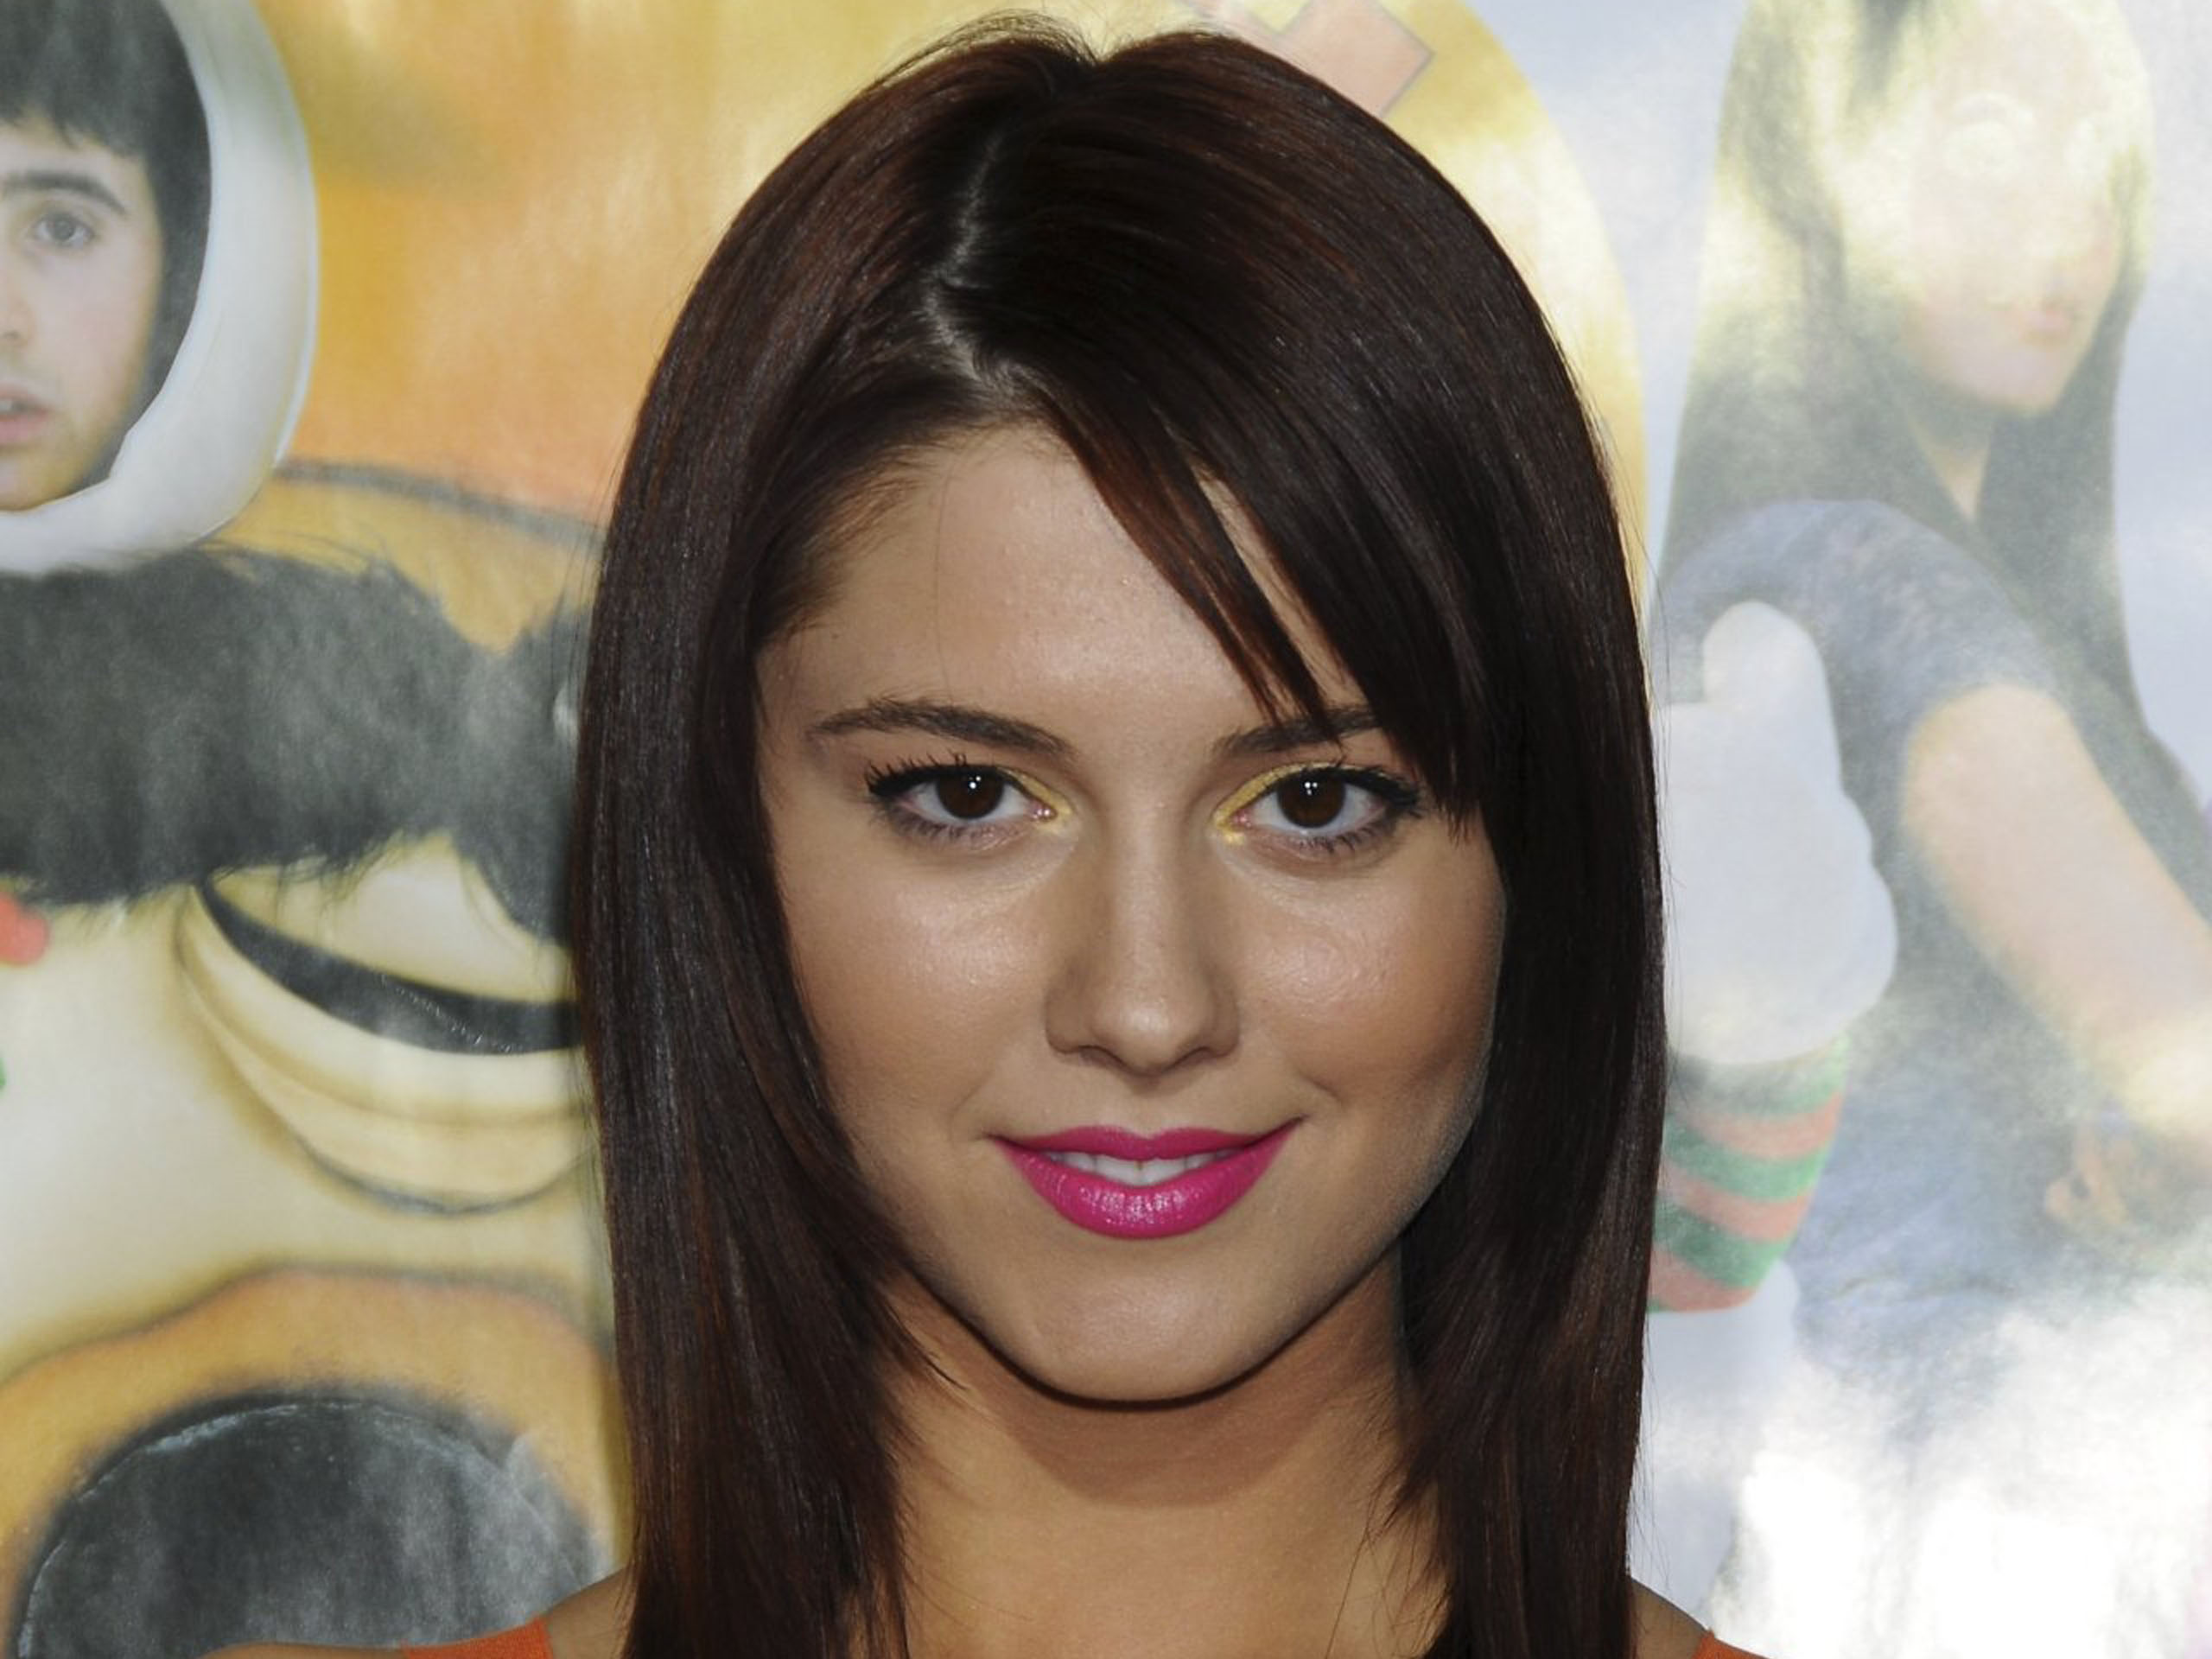 Mary Elizabeth Winstead 007 Which fantasy phone sex call are you in the mood for tonight?